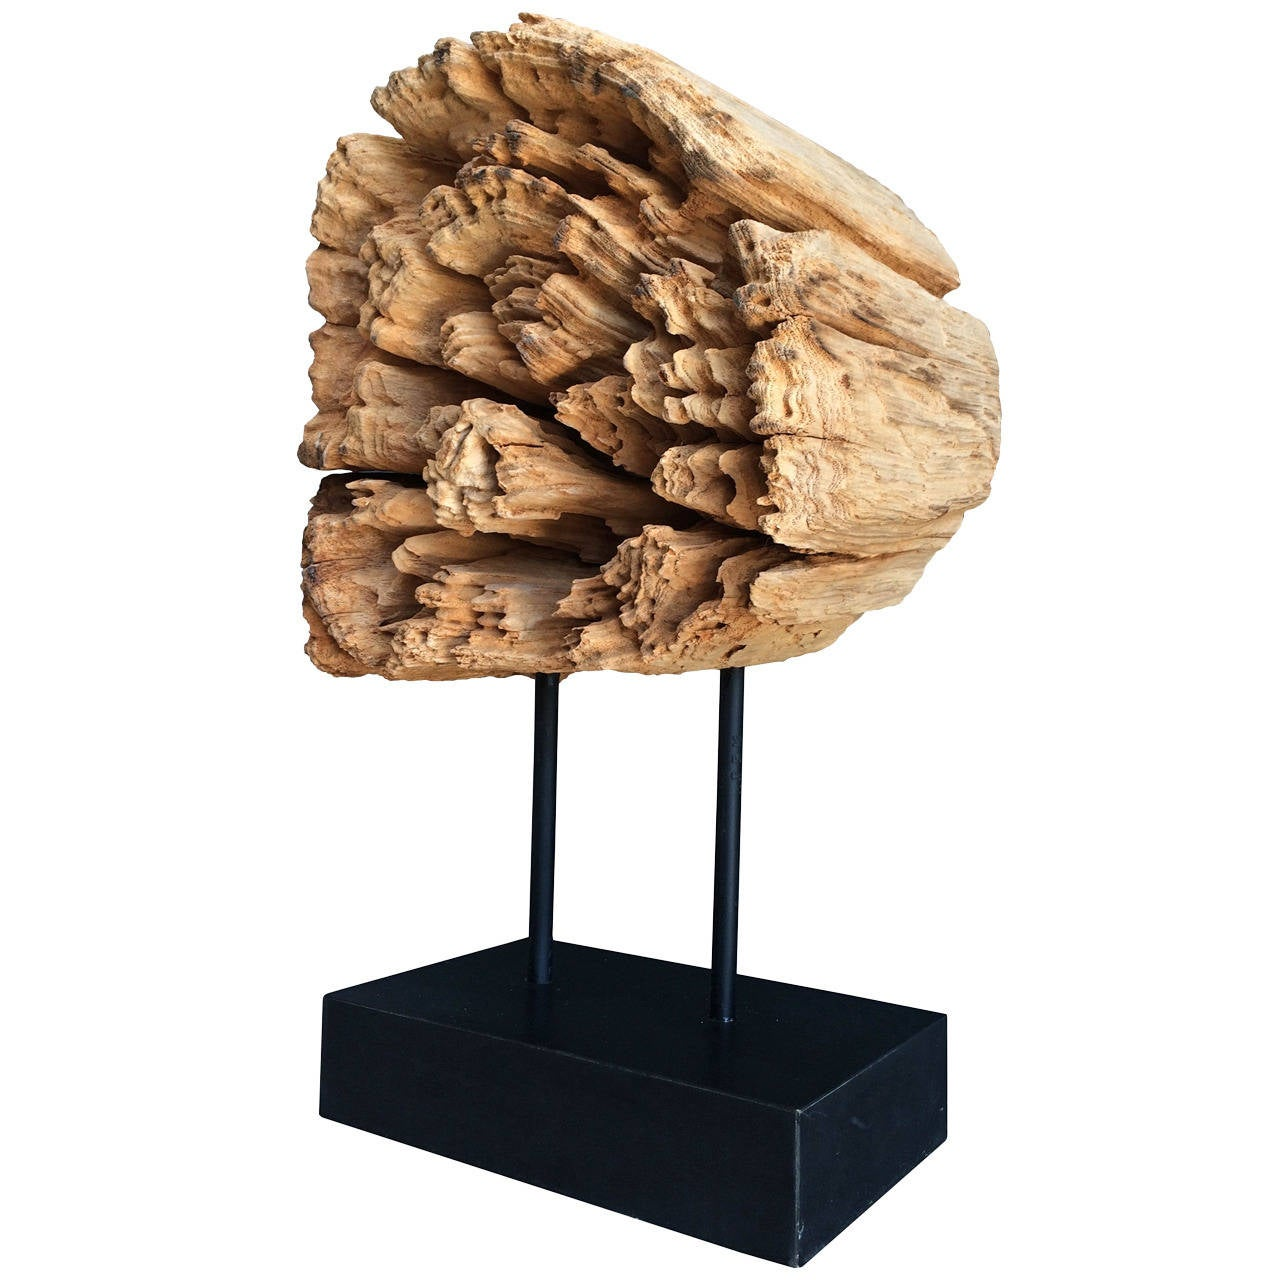 Stunning wood sculpture on a metal stand for sale at stdibs